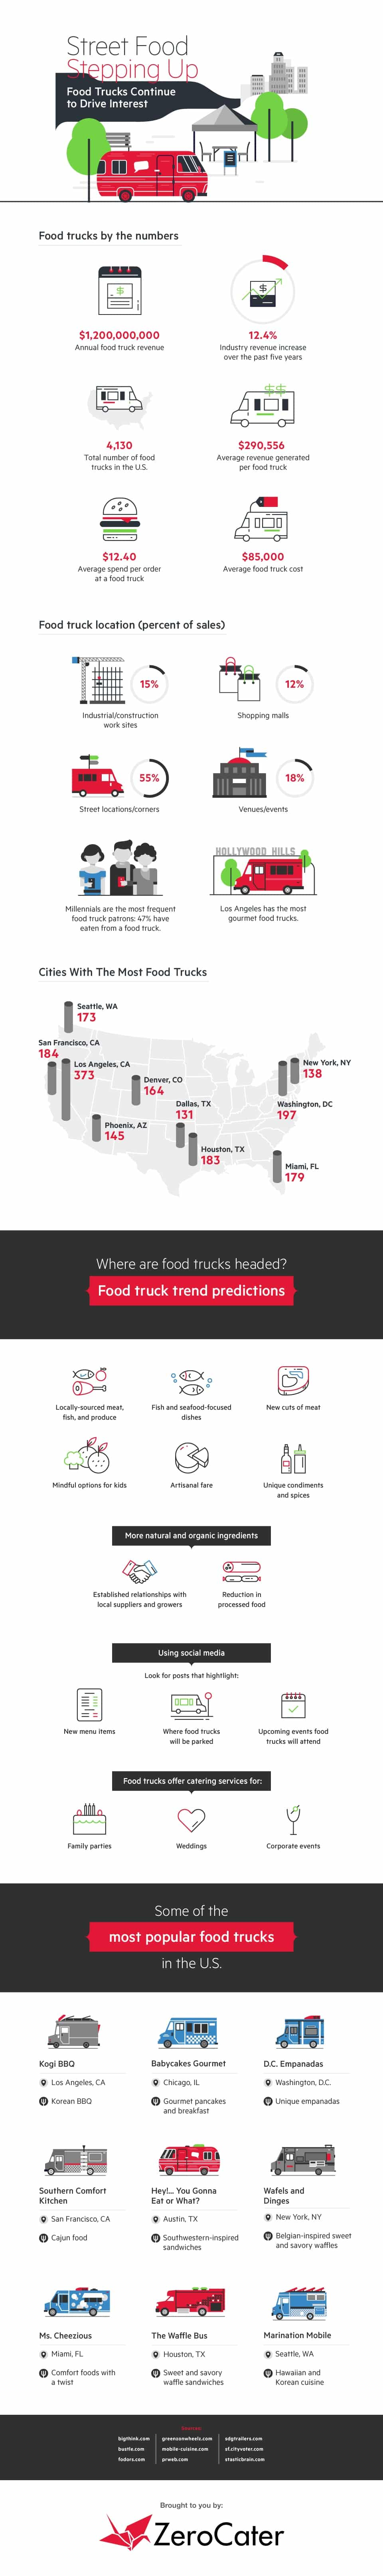 street-food-stepping-up-food-trucks-continue-to-drive-interest-infographics